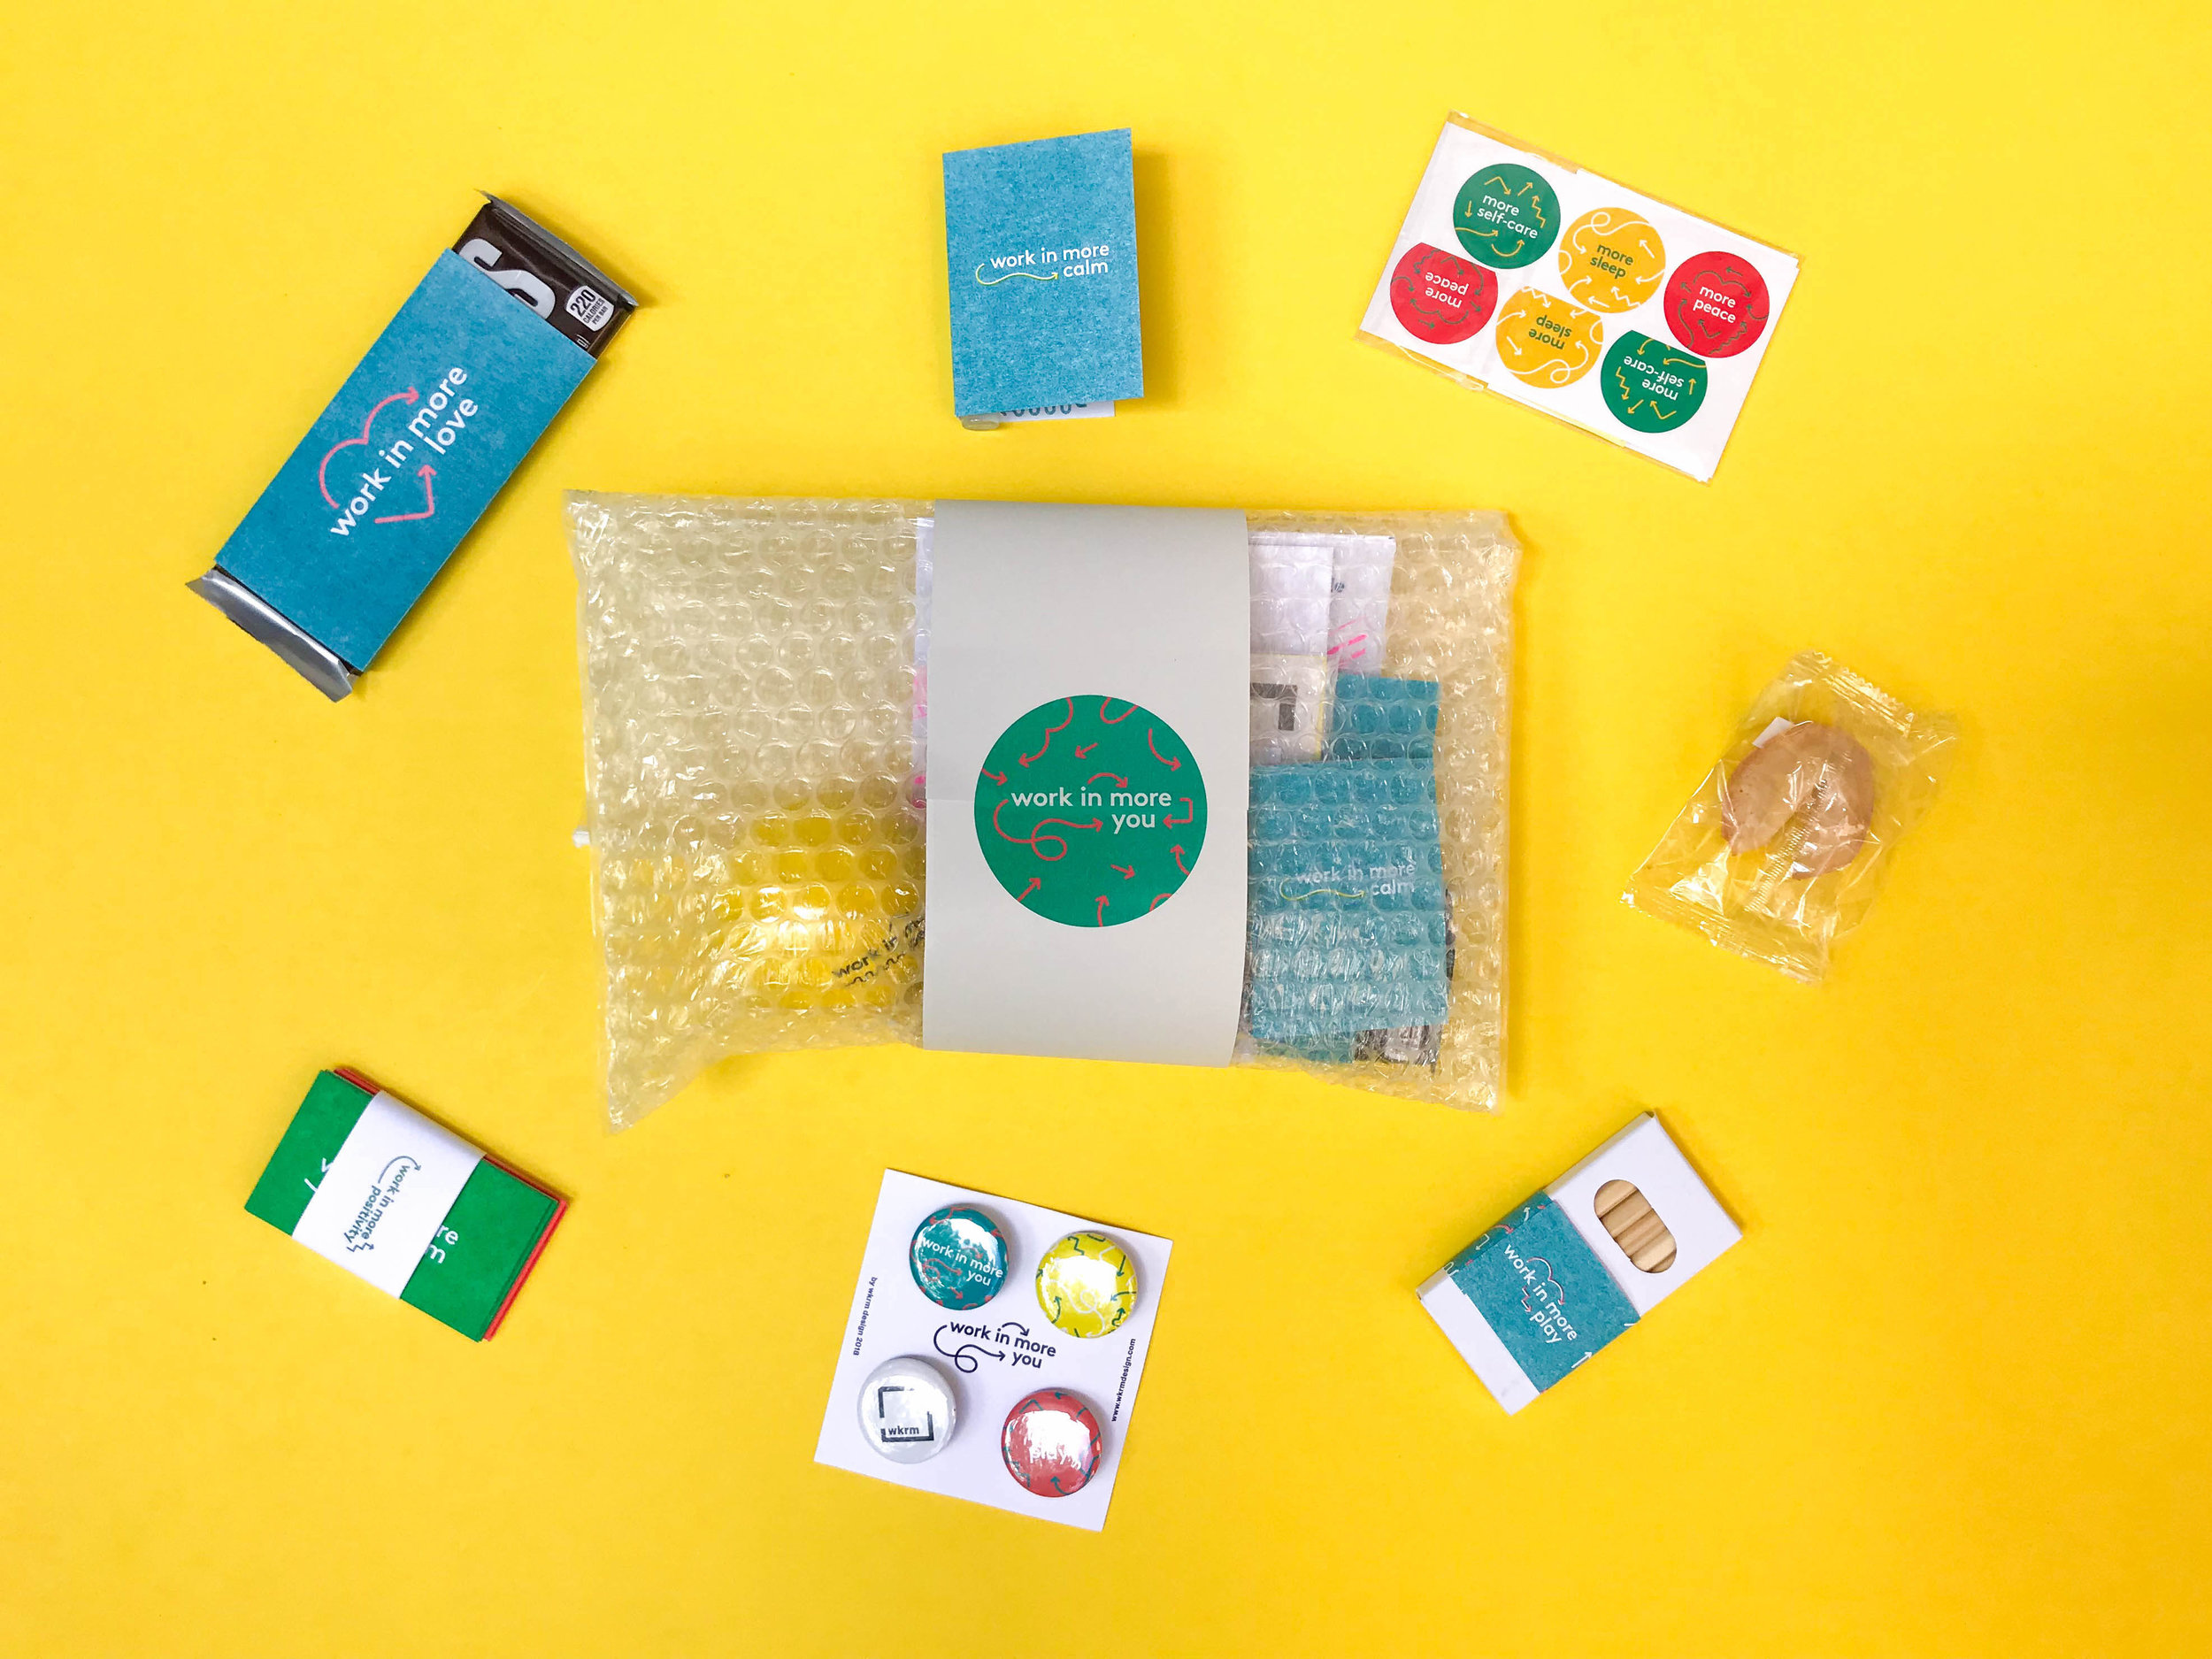 All the products included in the work in more you kit.  What's included: Chocolate, essential oils, stickers, motivational cards, buttons, coloring pencils, a coloring book, fortune cookie containing random motivational messages, soothing tea, and a stress ball.